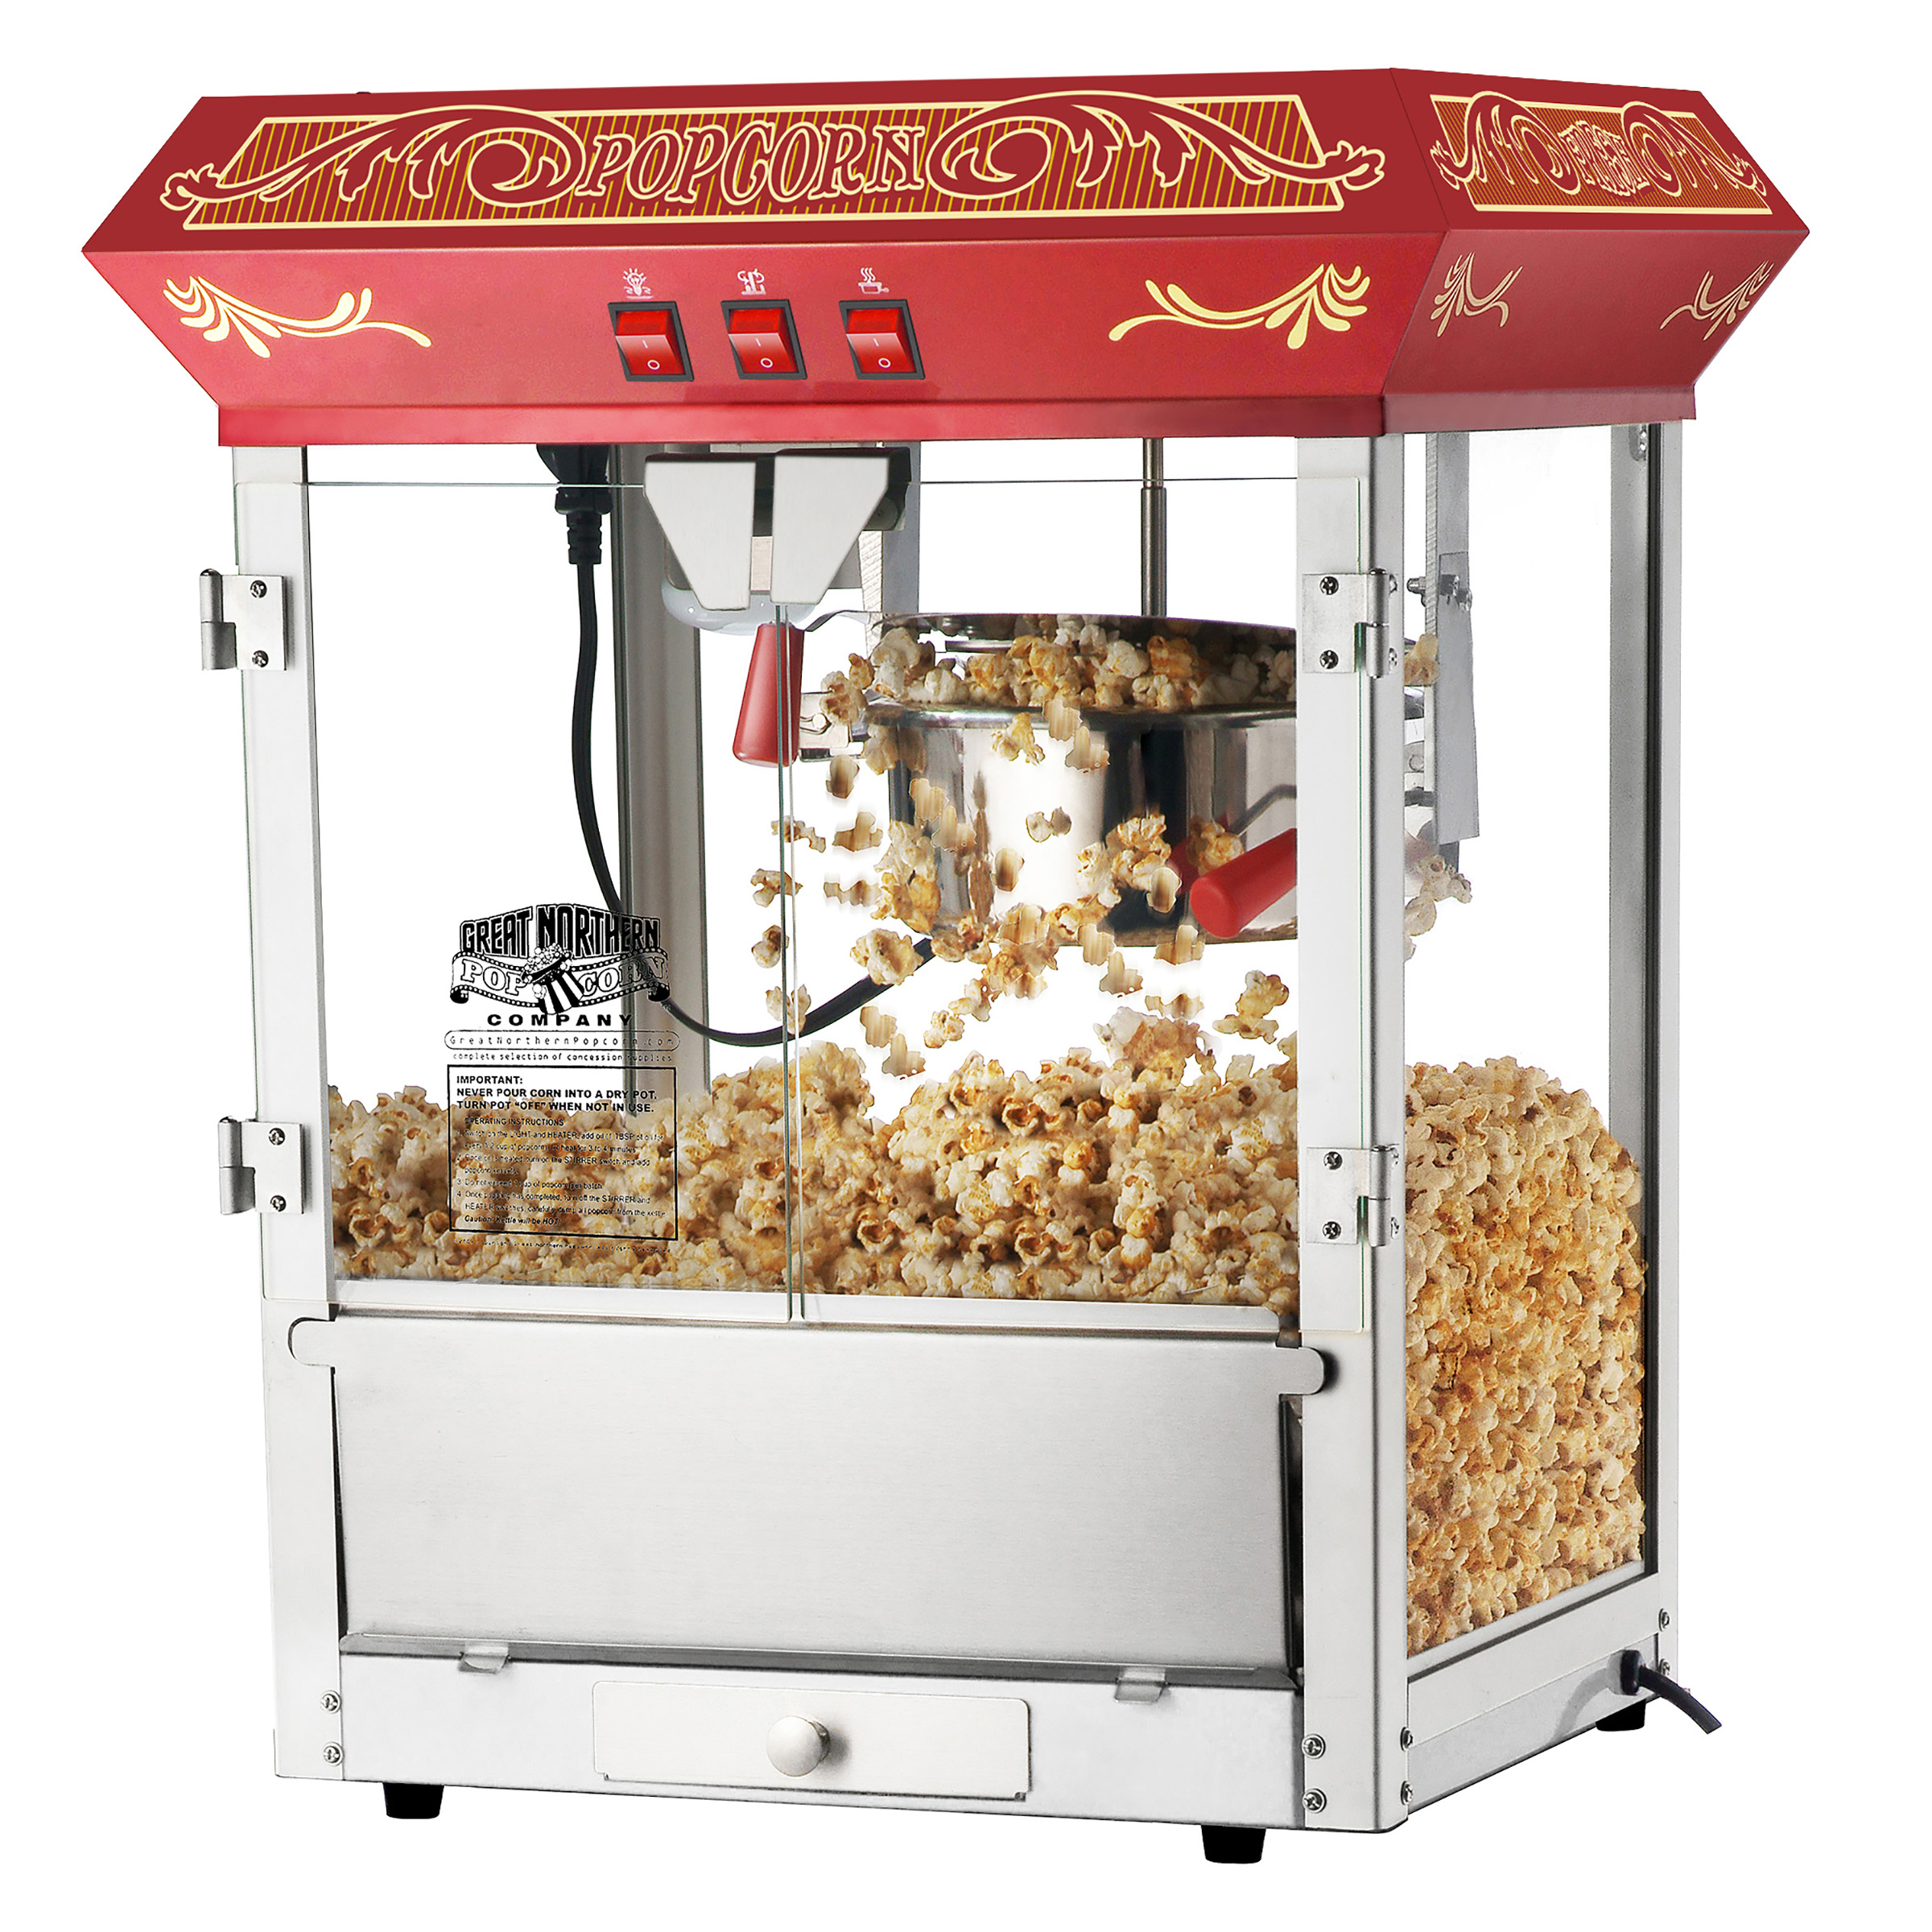 Red Old Time Popcorn Popper Machine, 8 Ounce by Great Northern Popcorn